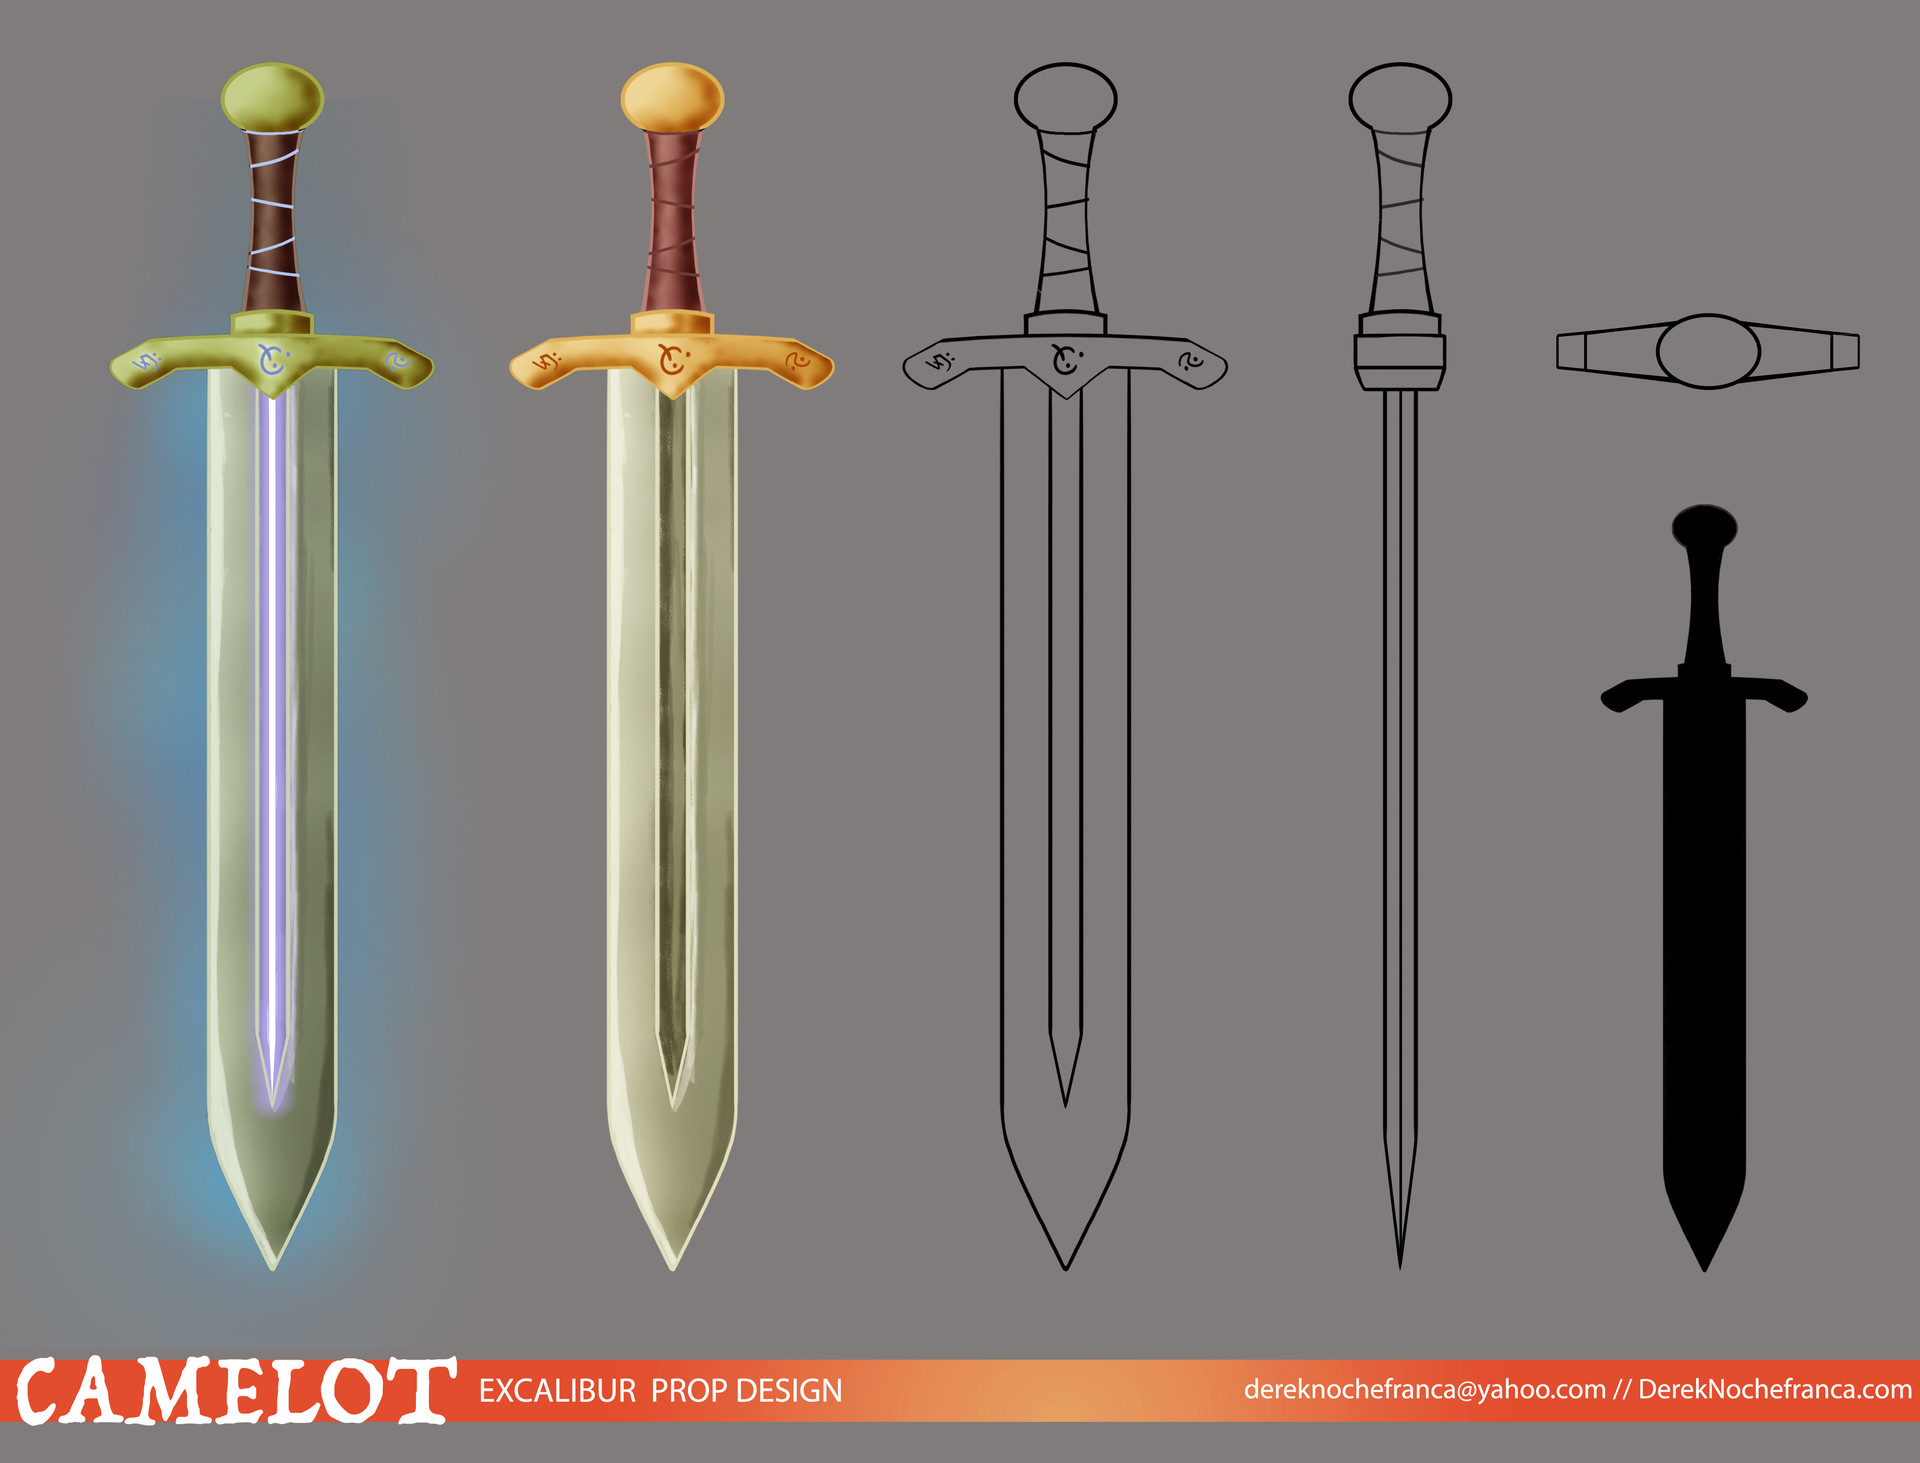 Camelot - Excalibur model sheet